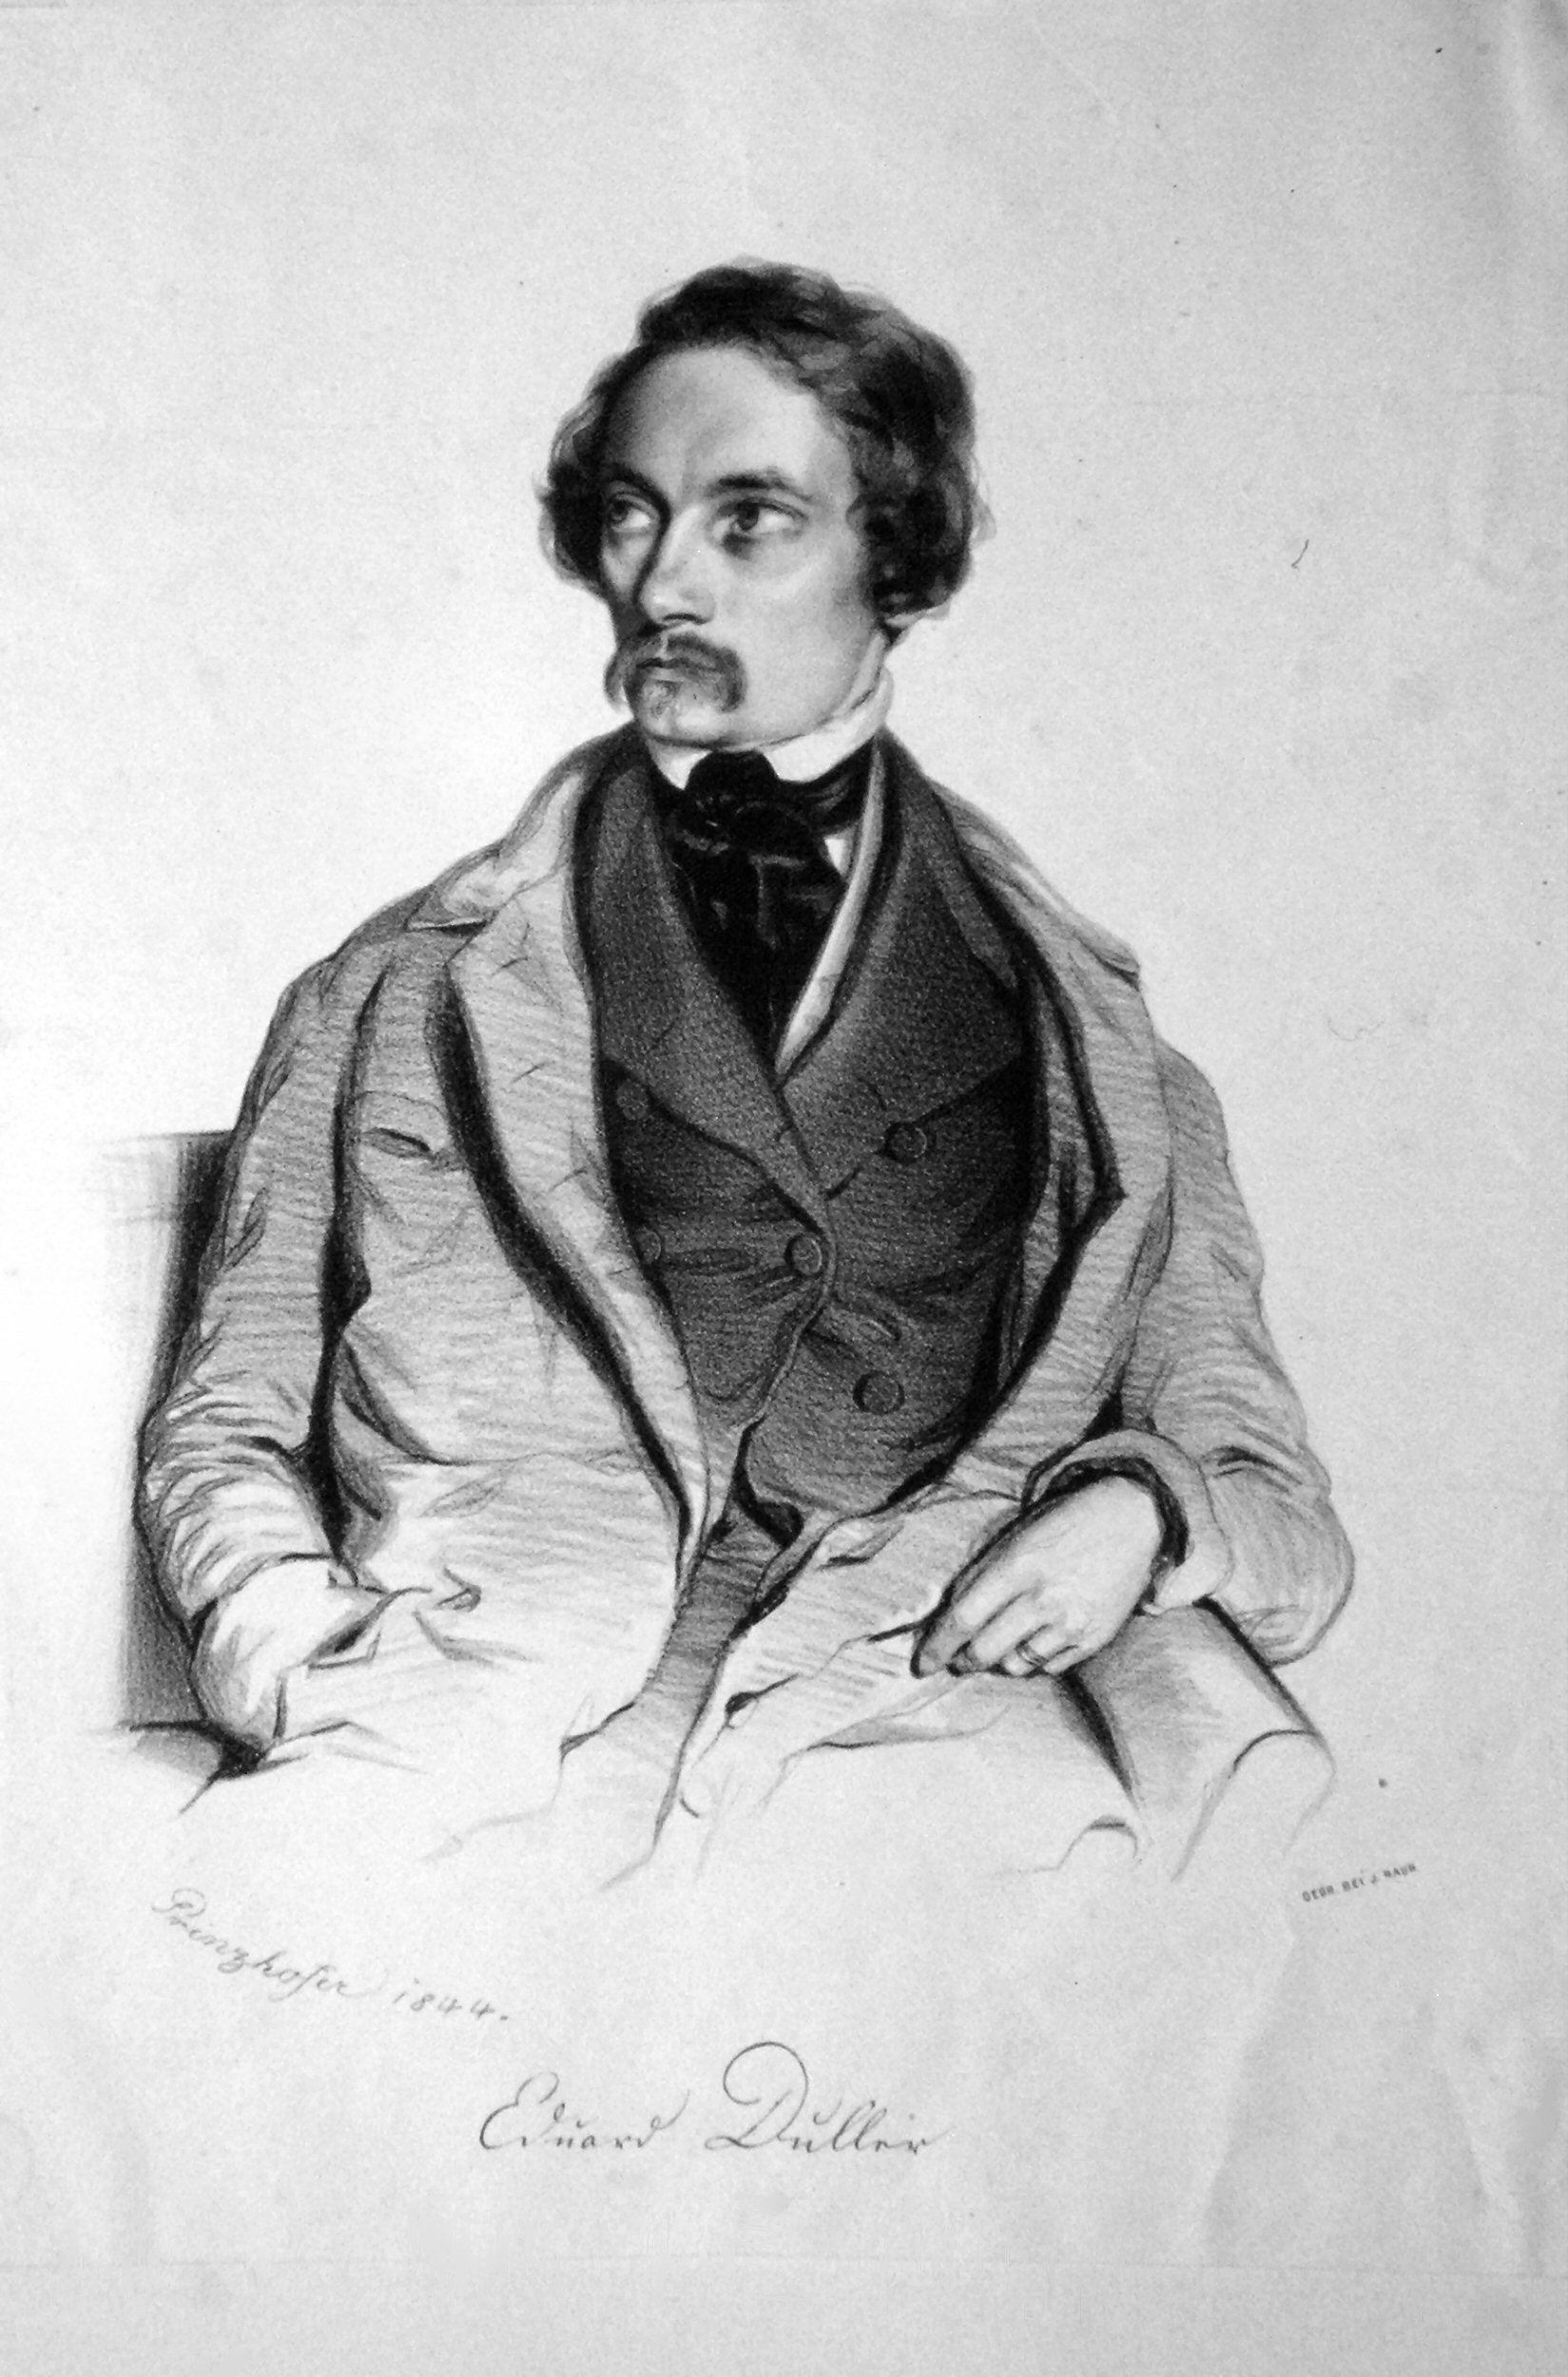 Eduard Dulleer, lithograph by [[August Prinzhofer